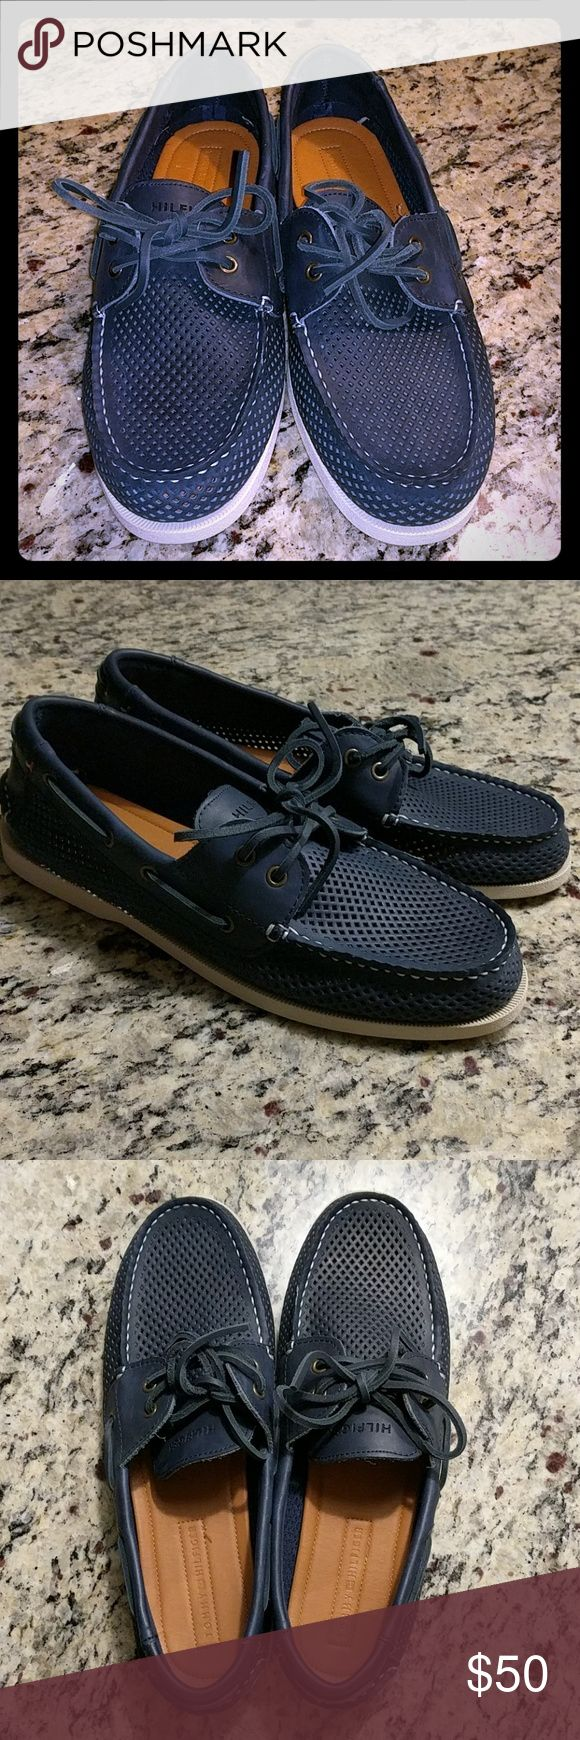 Tommy Hilfiger mens 10.5 navy blue boat shoes Pair of TH navy blue boat shoes in size 10.5 new, never worn. No tags, no original box! Tommy Hilfiger Shoes Boat Shoes